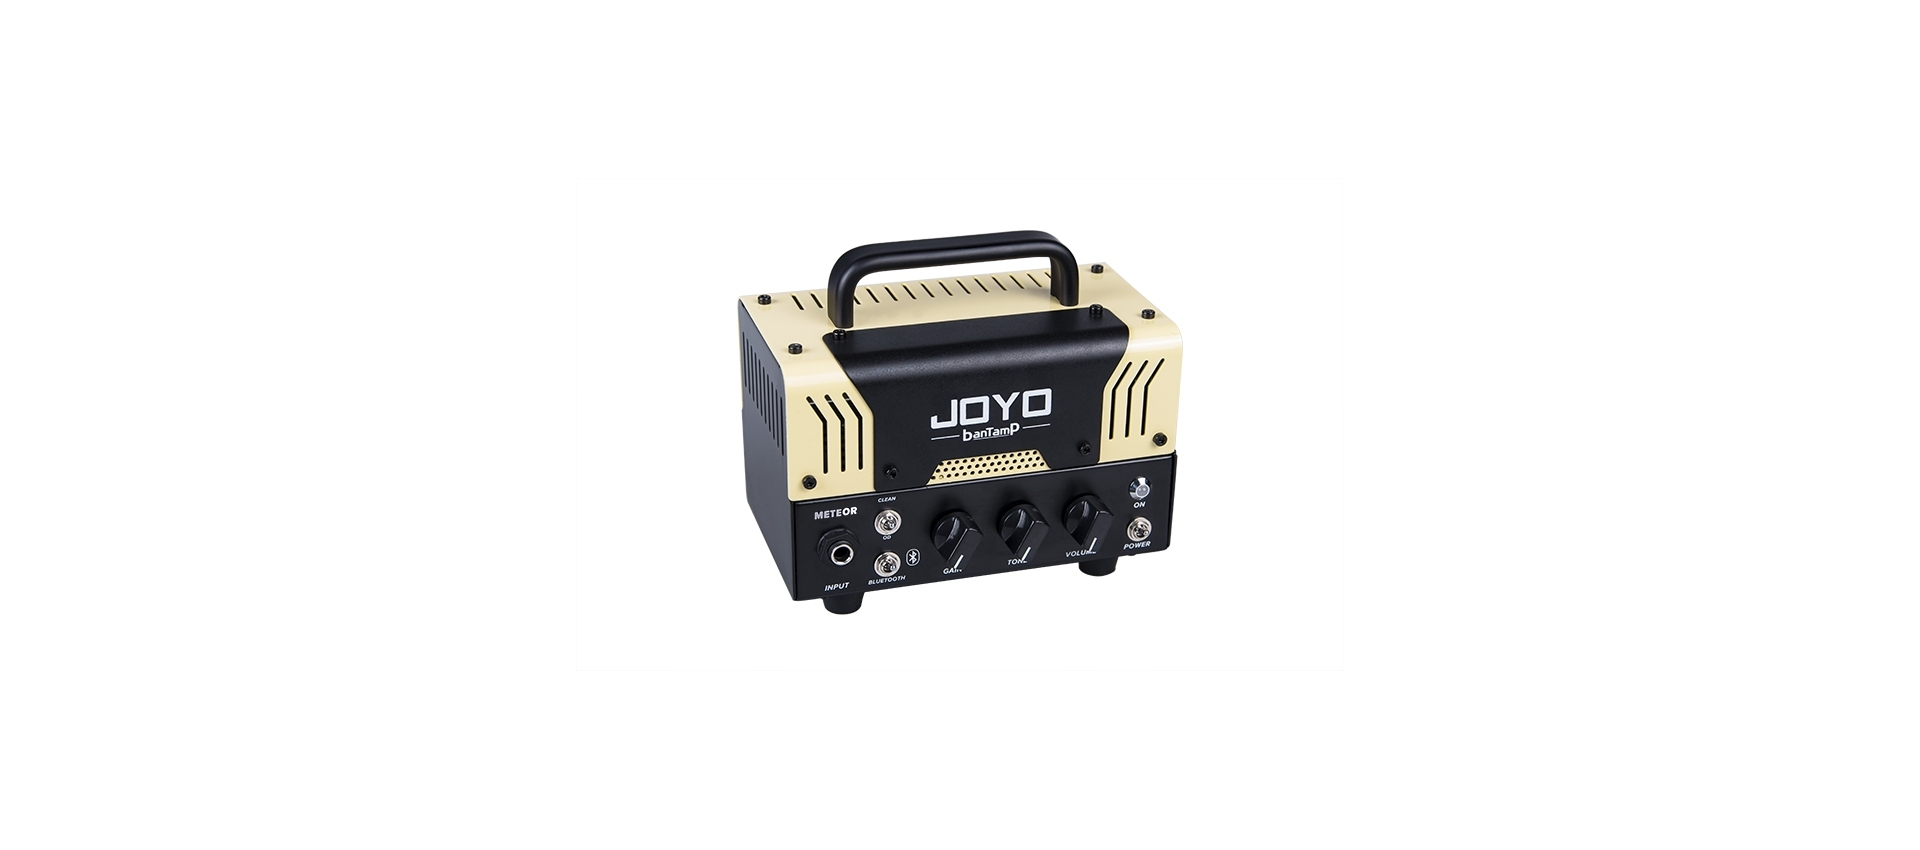 joyo meteor miniamp 2ch luckymusic. Black Bedroom Furniture Sets. Home Design Ideas